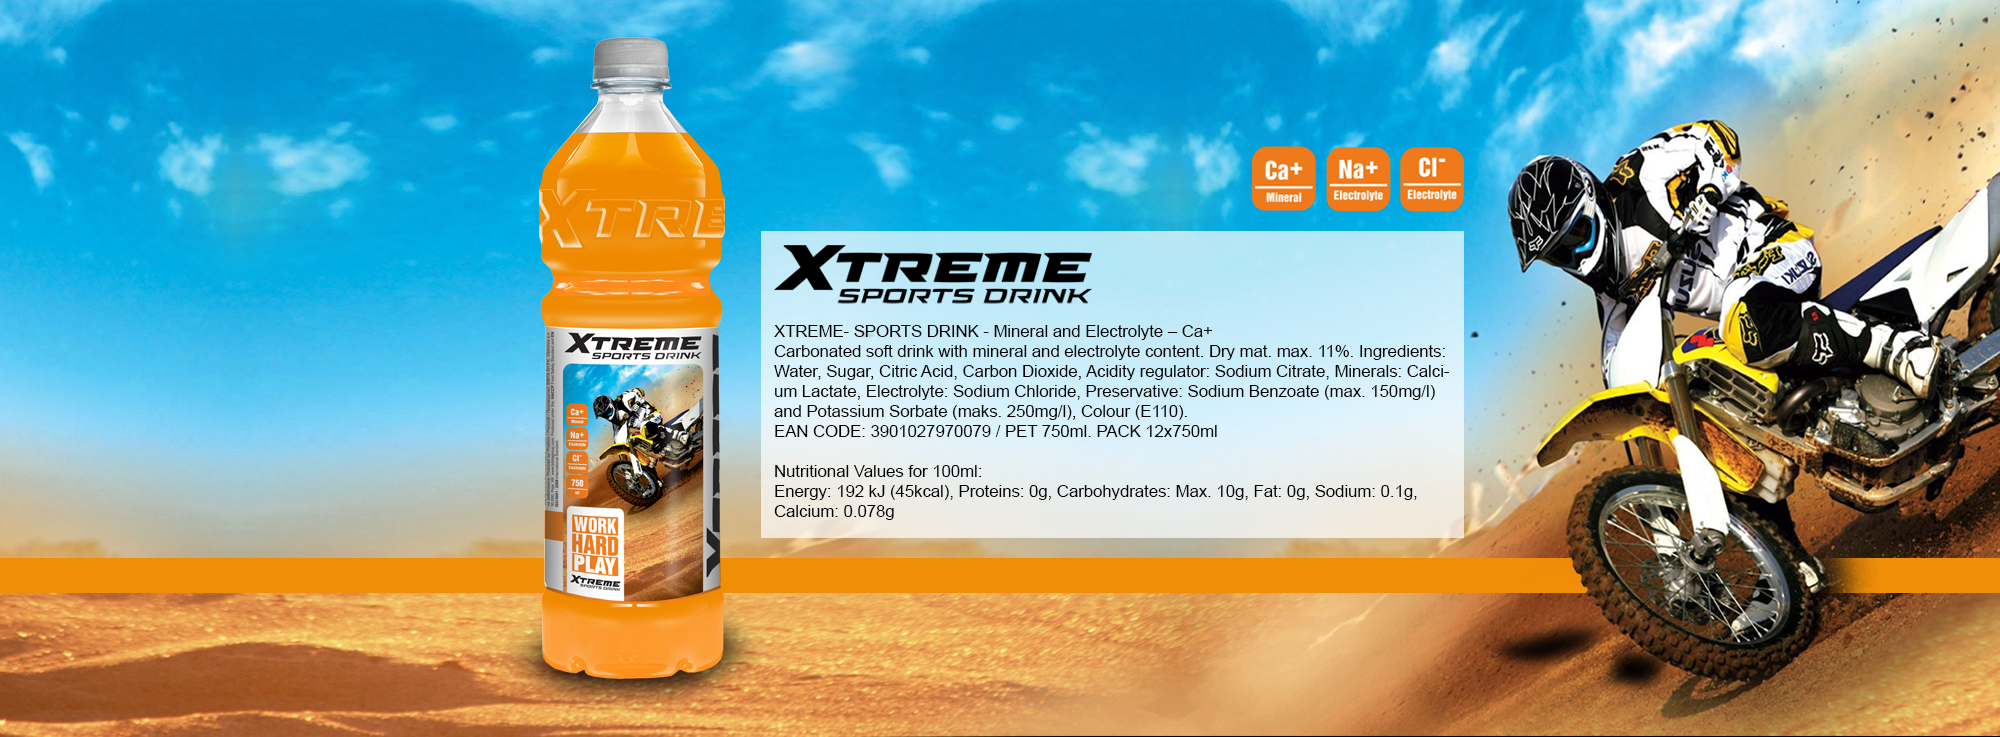 Xtreme Sports Drink_2